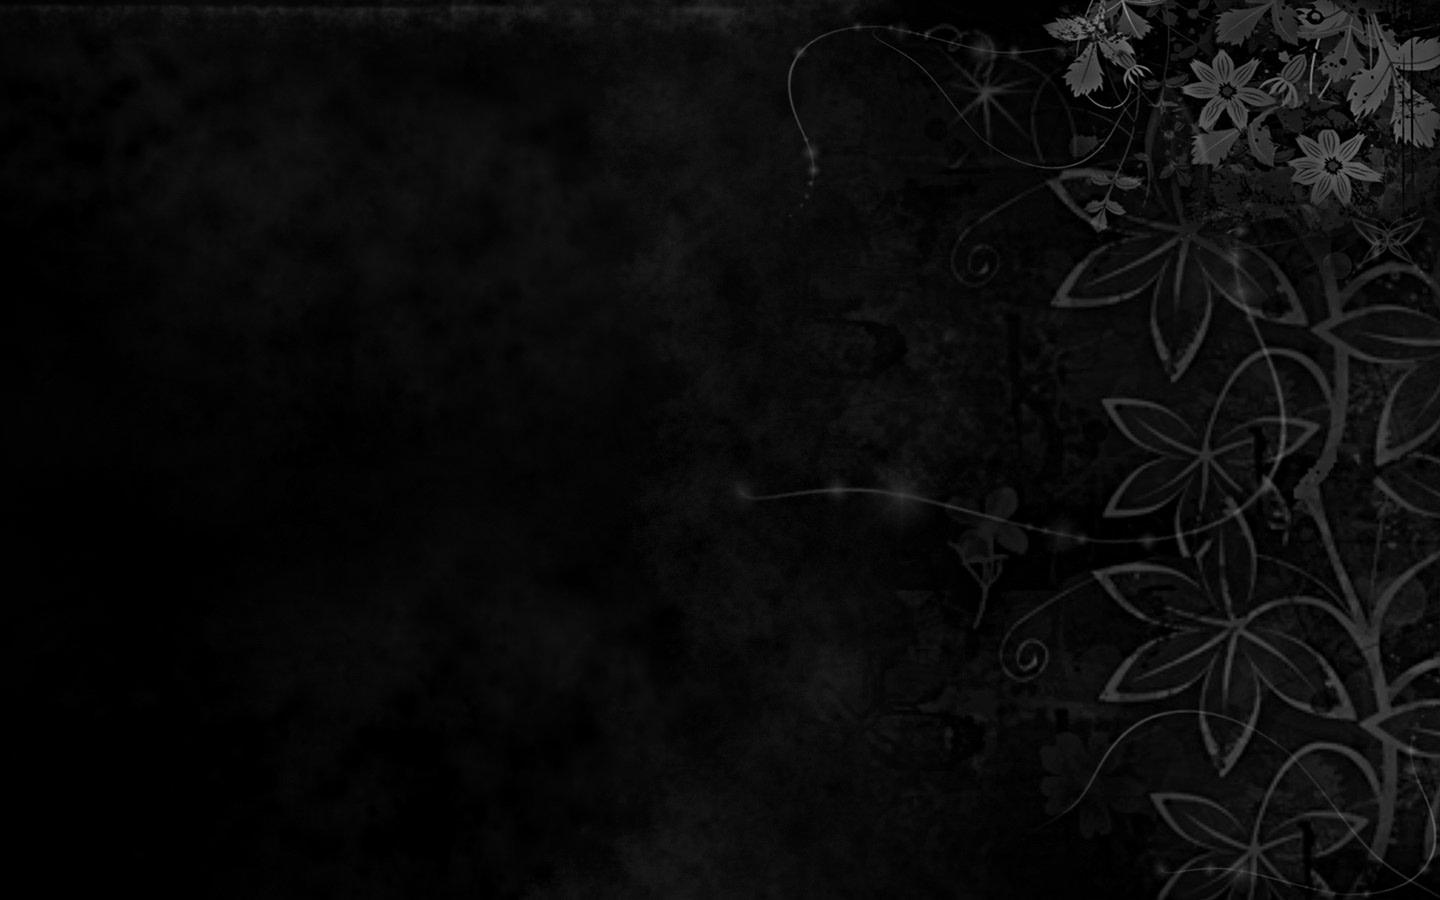 black wallpaper black wallpaper black wallpaper black wallpaper black 1440x900